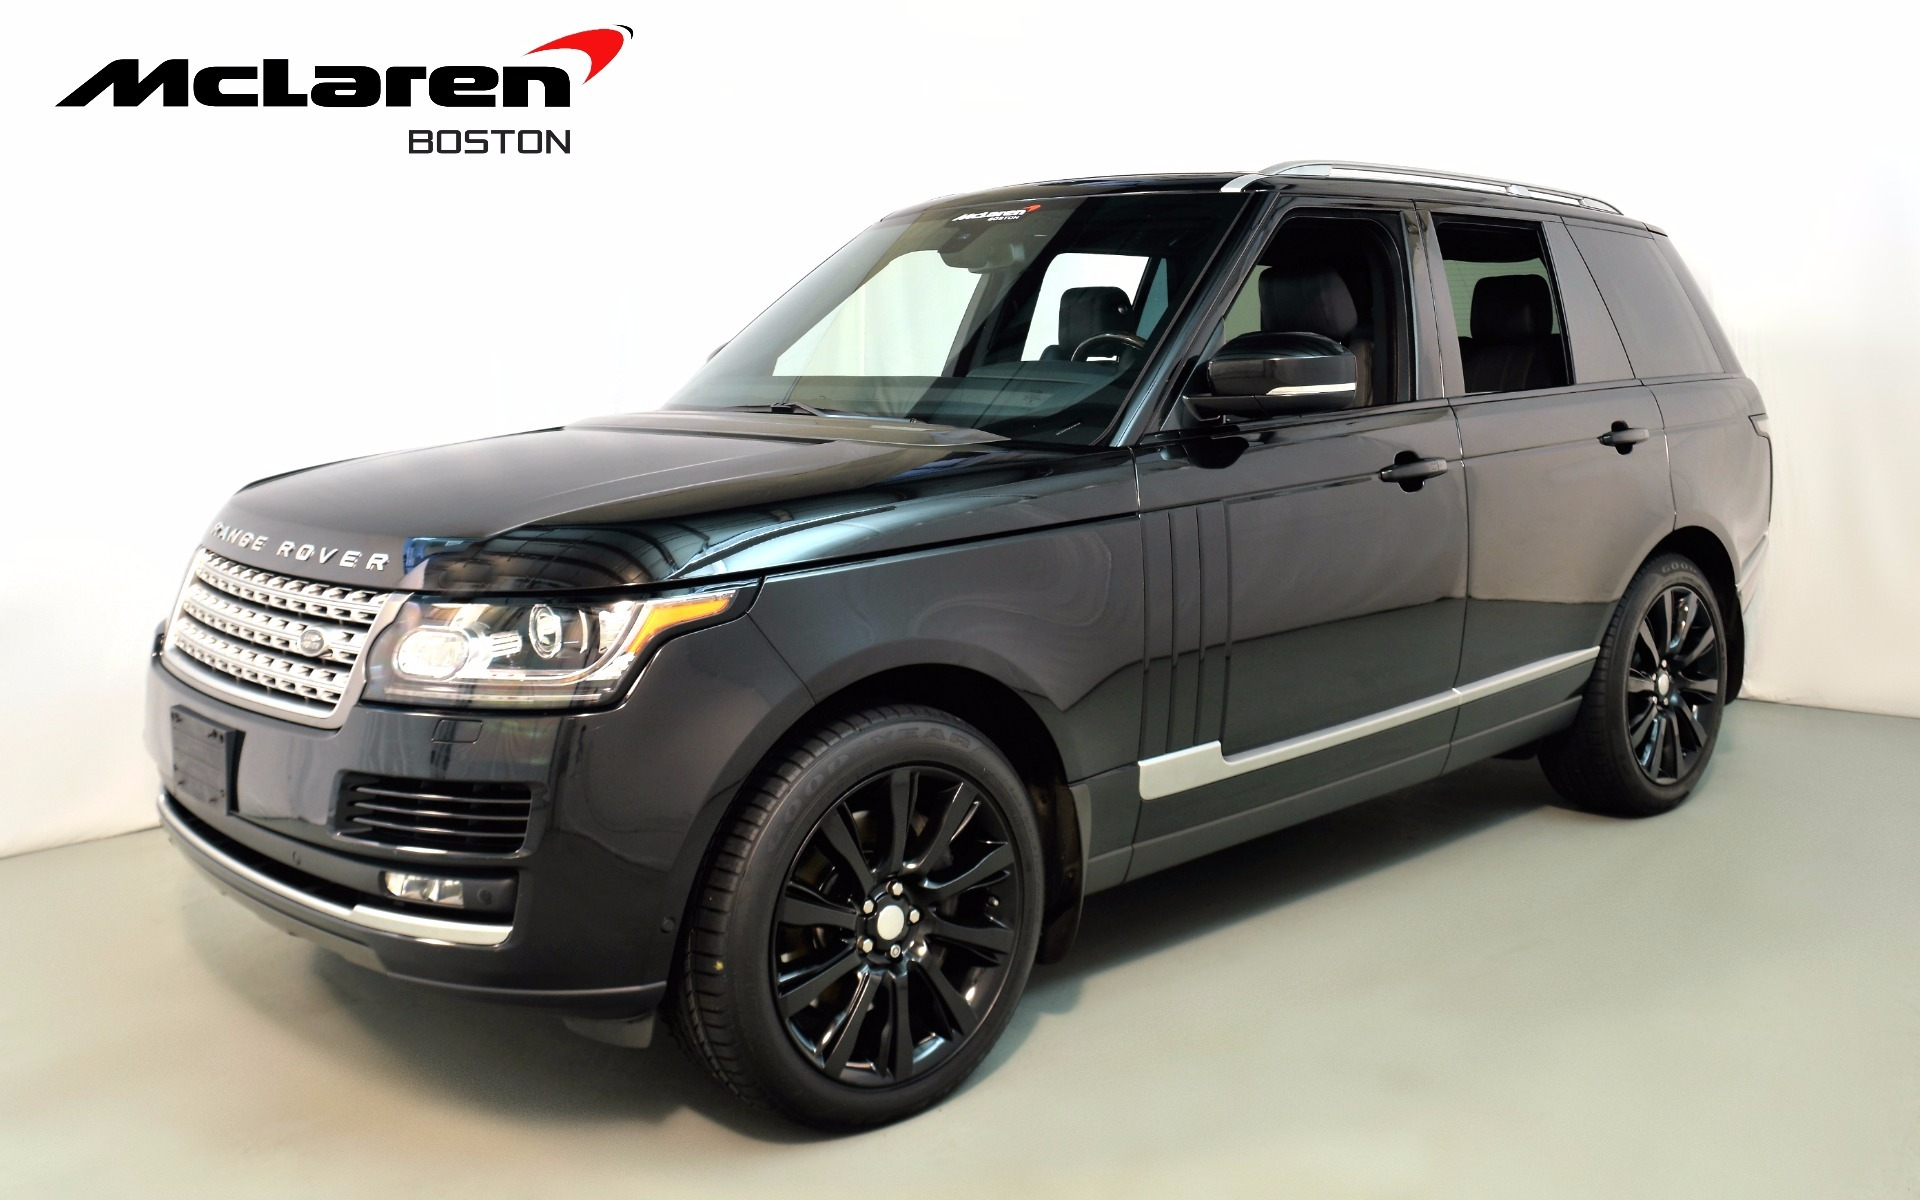 2014 land rover range rover supercharged ebony edition for sale in norwell ma 156743 mclaren. Black Bedroom Furniture Sets. Home Design Ideas